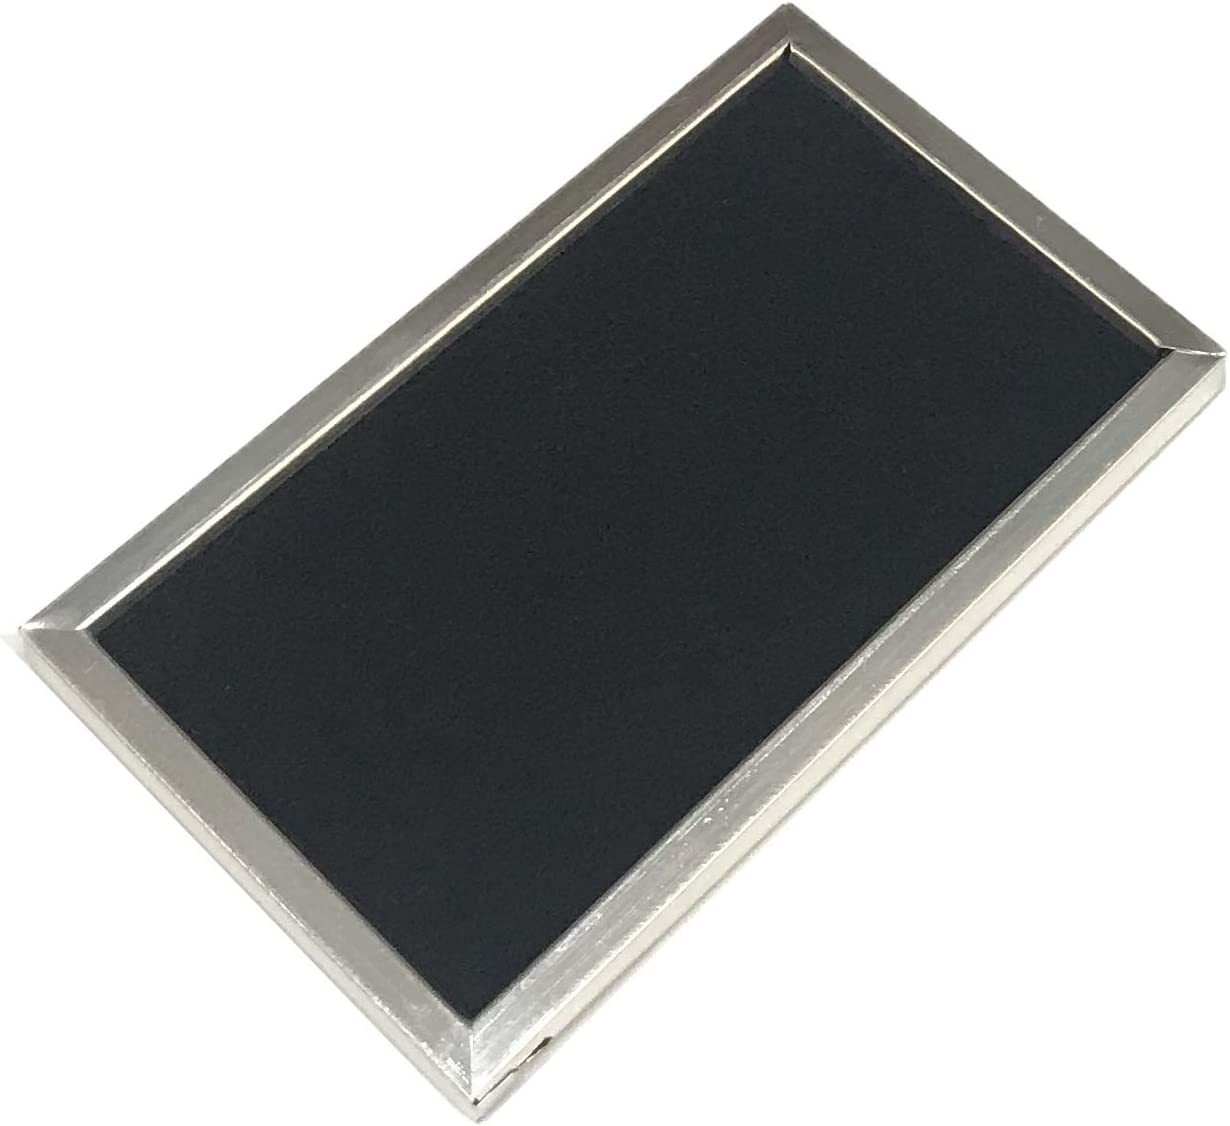 OEM Samsung Microwave CHARCOAL Filter Shipped With ME16H702SEB, ME16H702SEB/AA, ME16H702SEB/AC, ME16H702SES, ME16H702SES/AA, ME16H702SES/AC